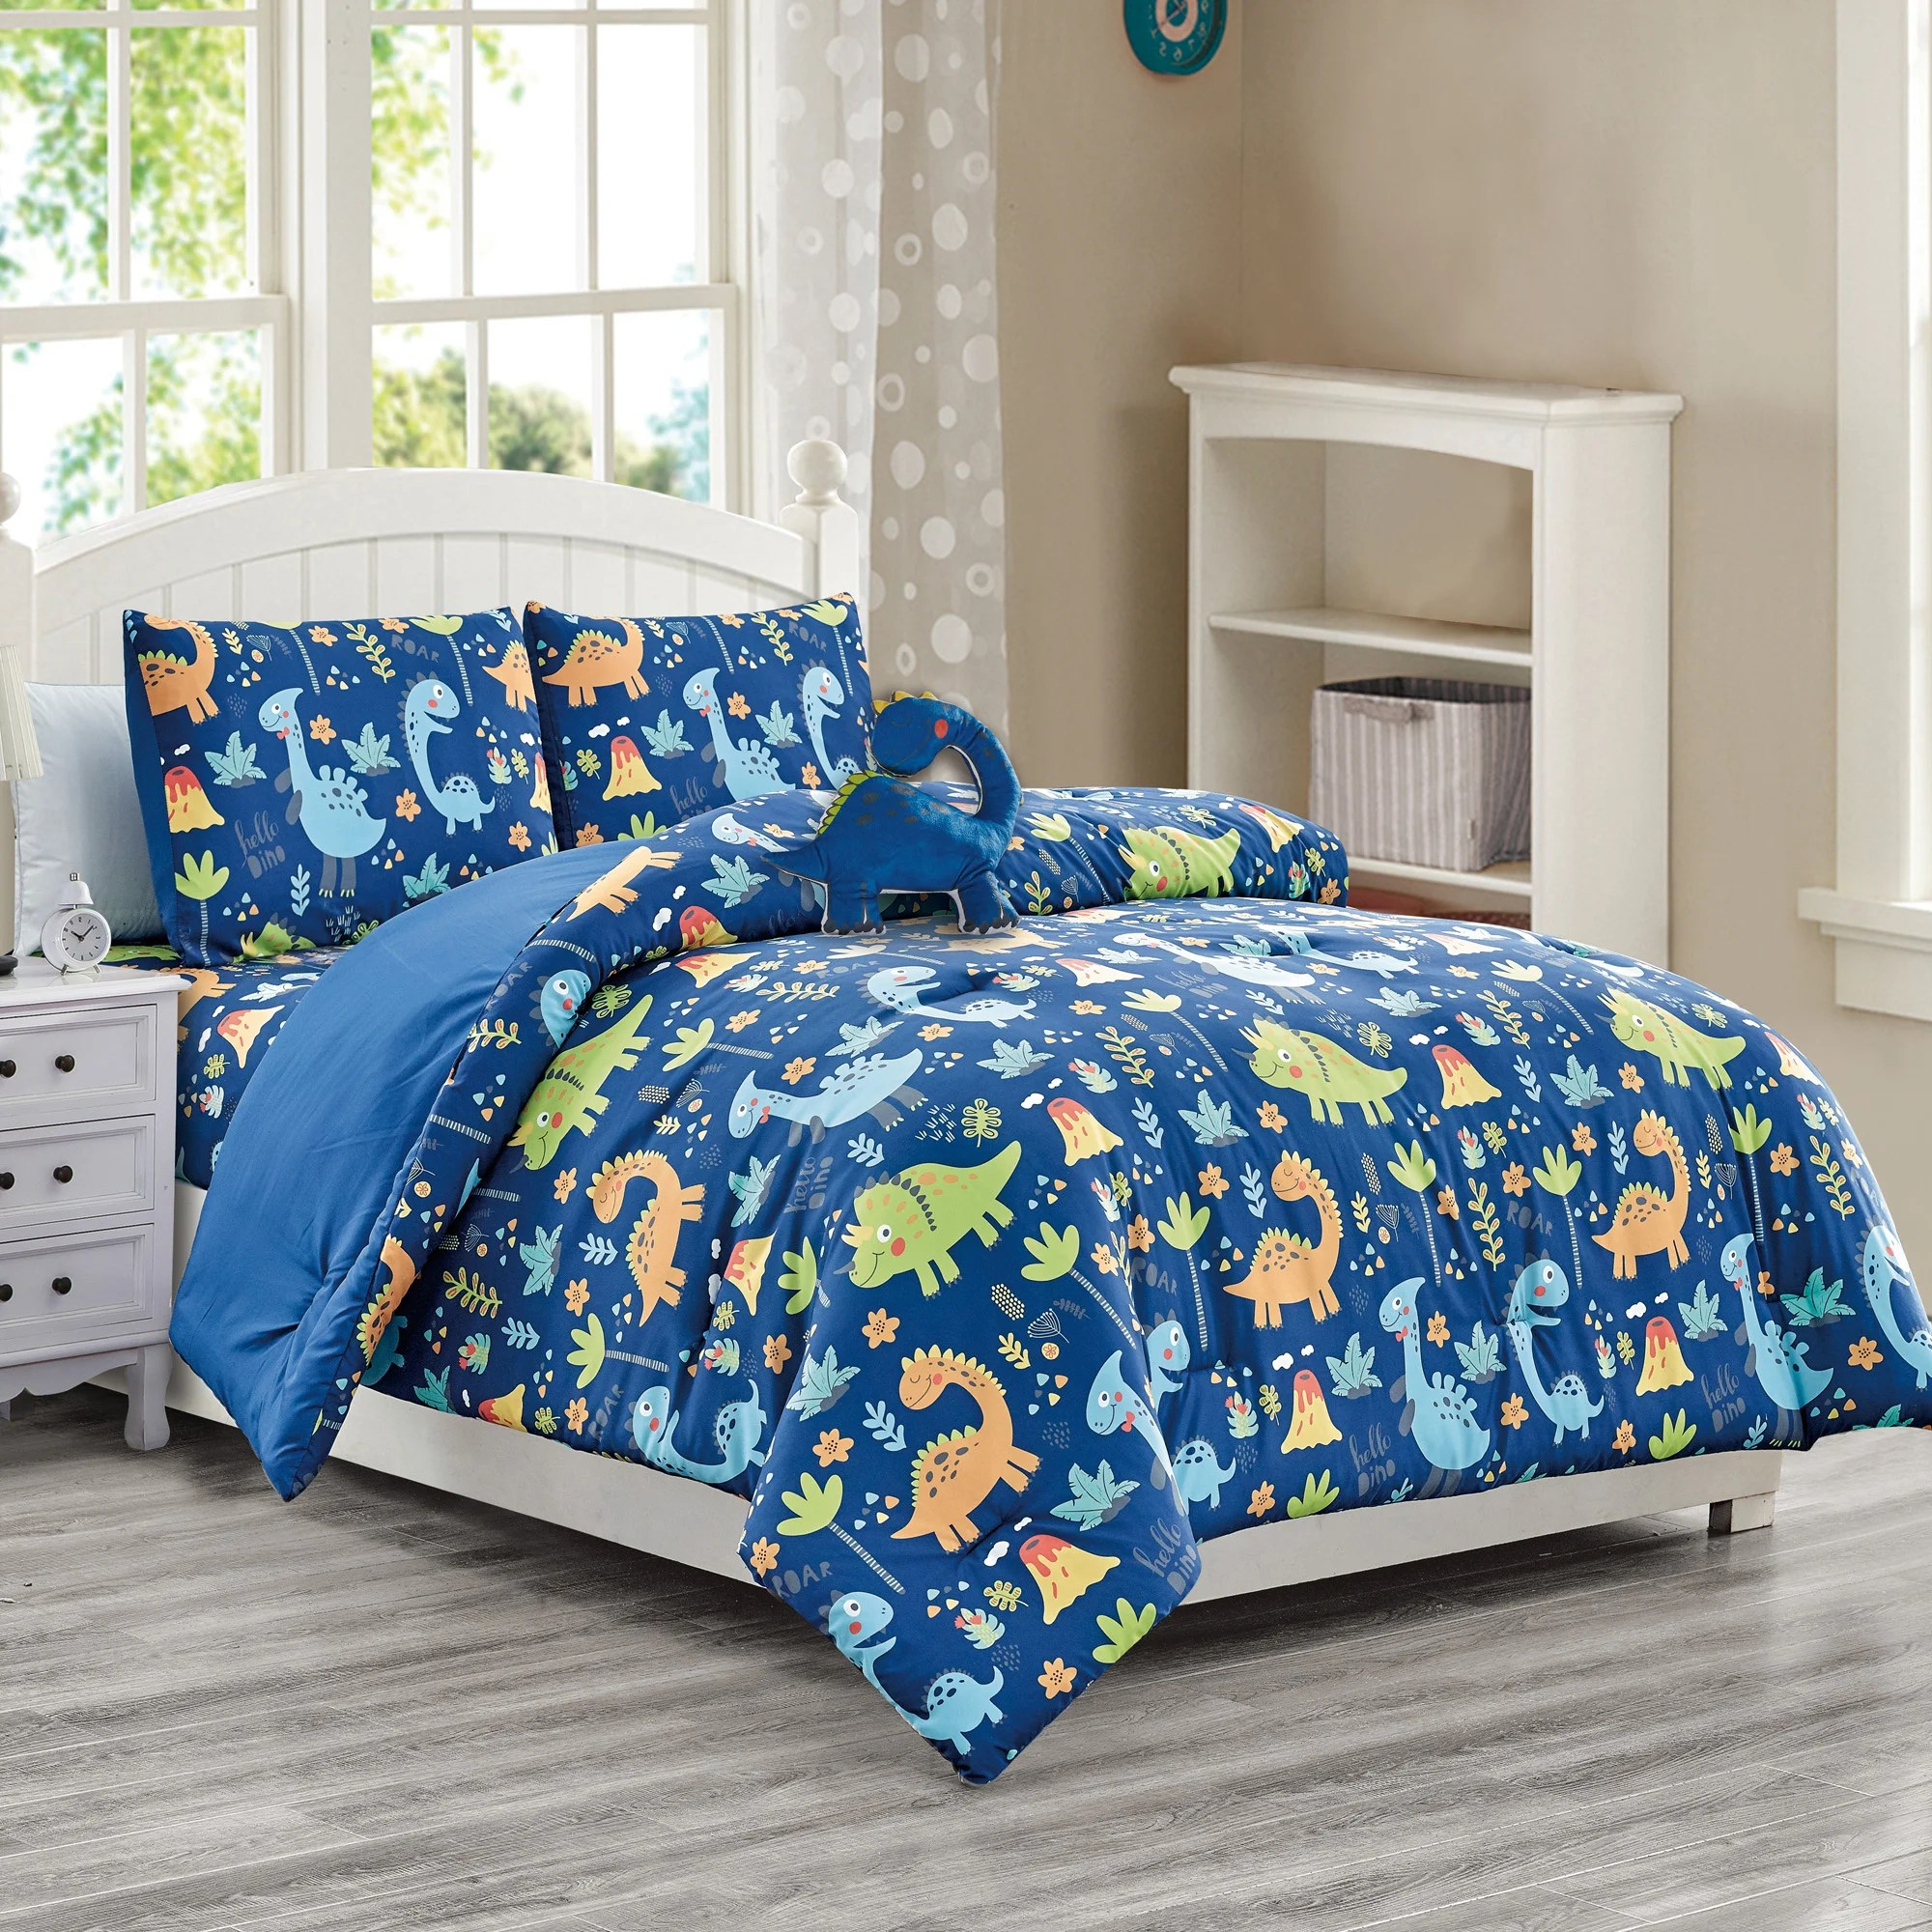 solid toddler bedding you ll love in